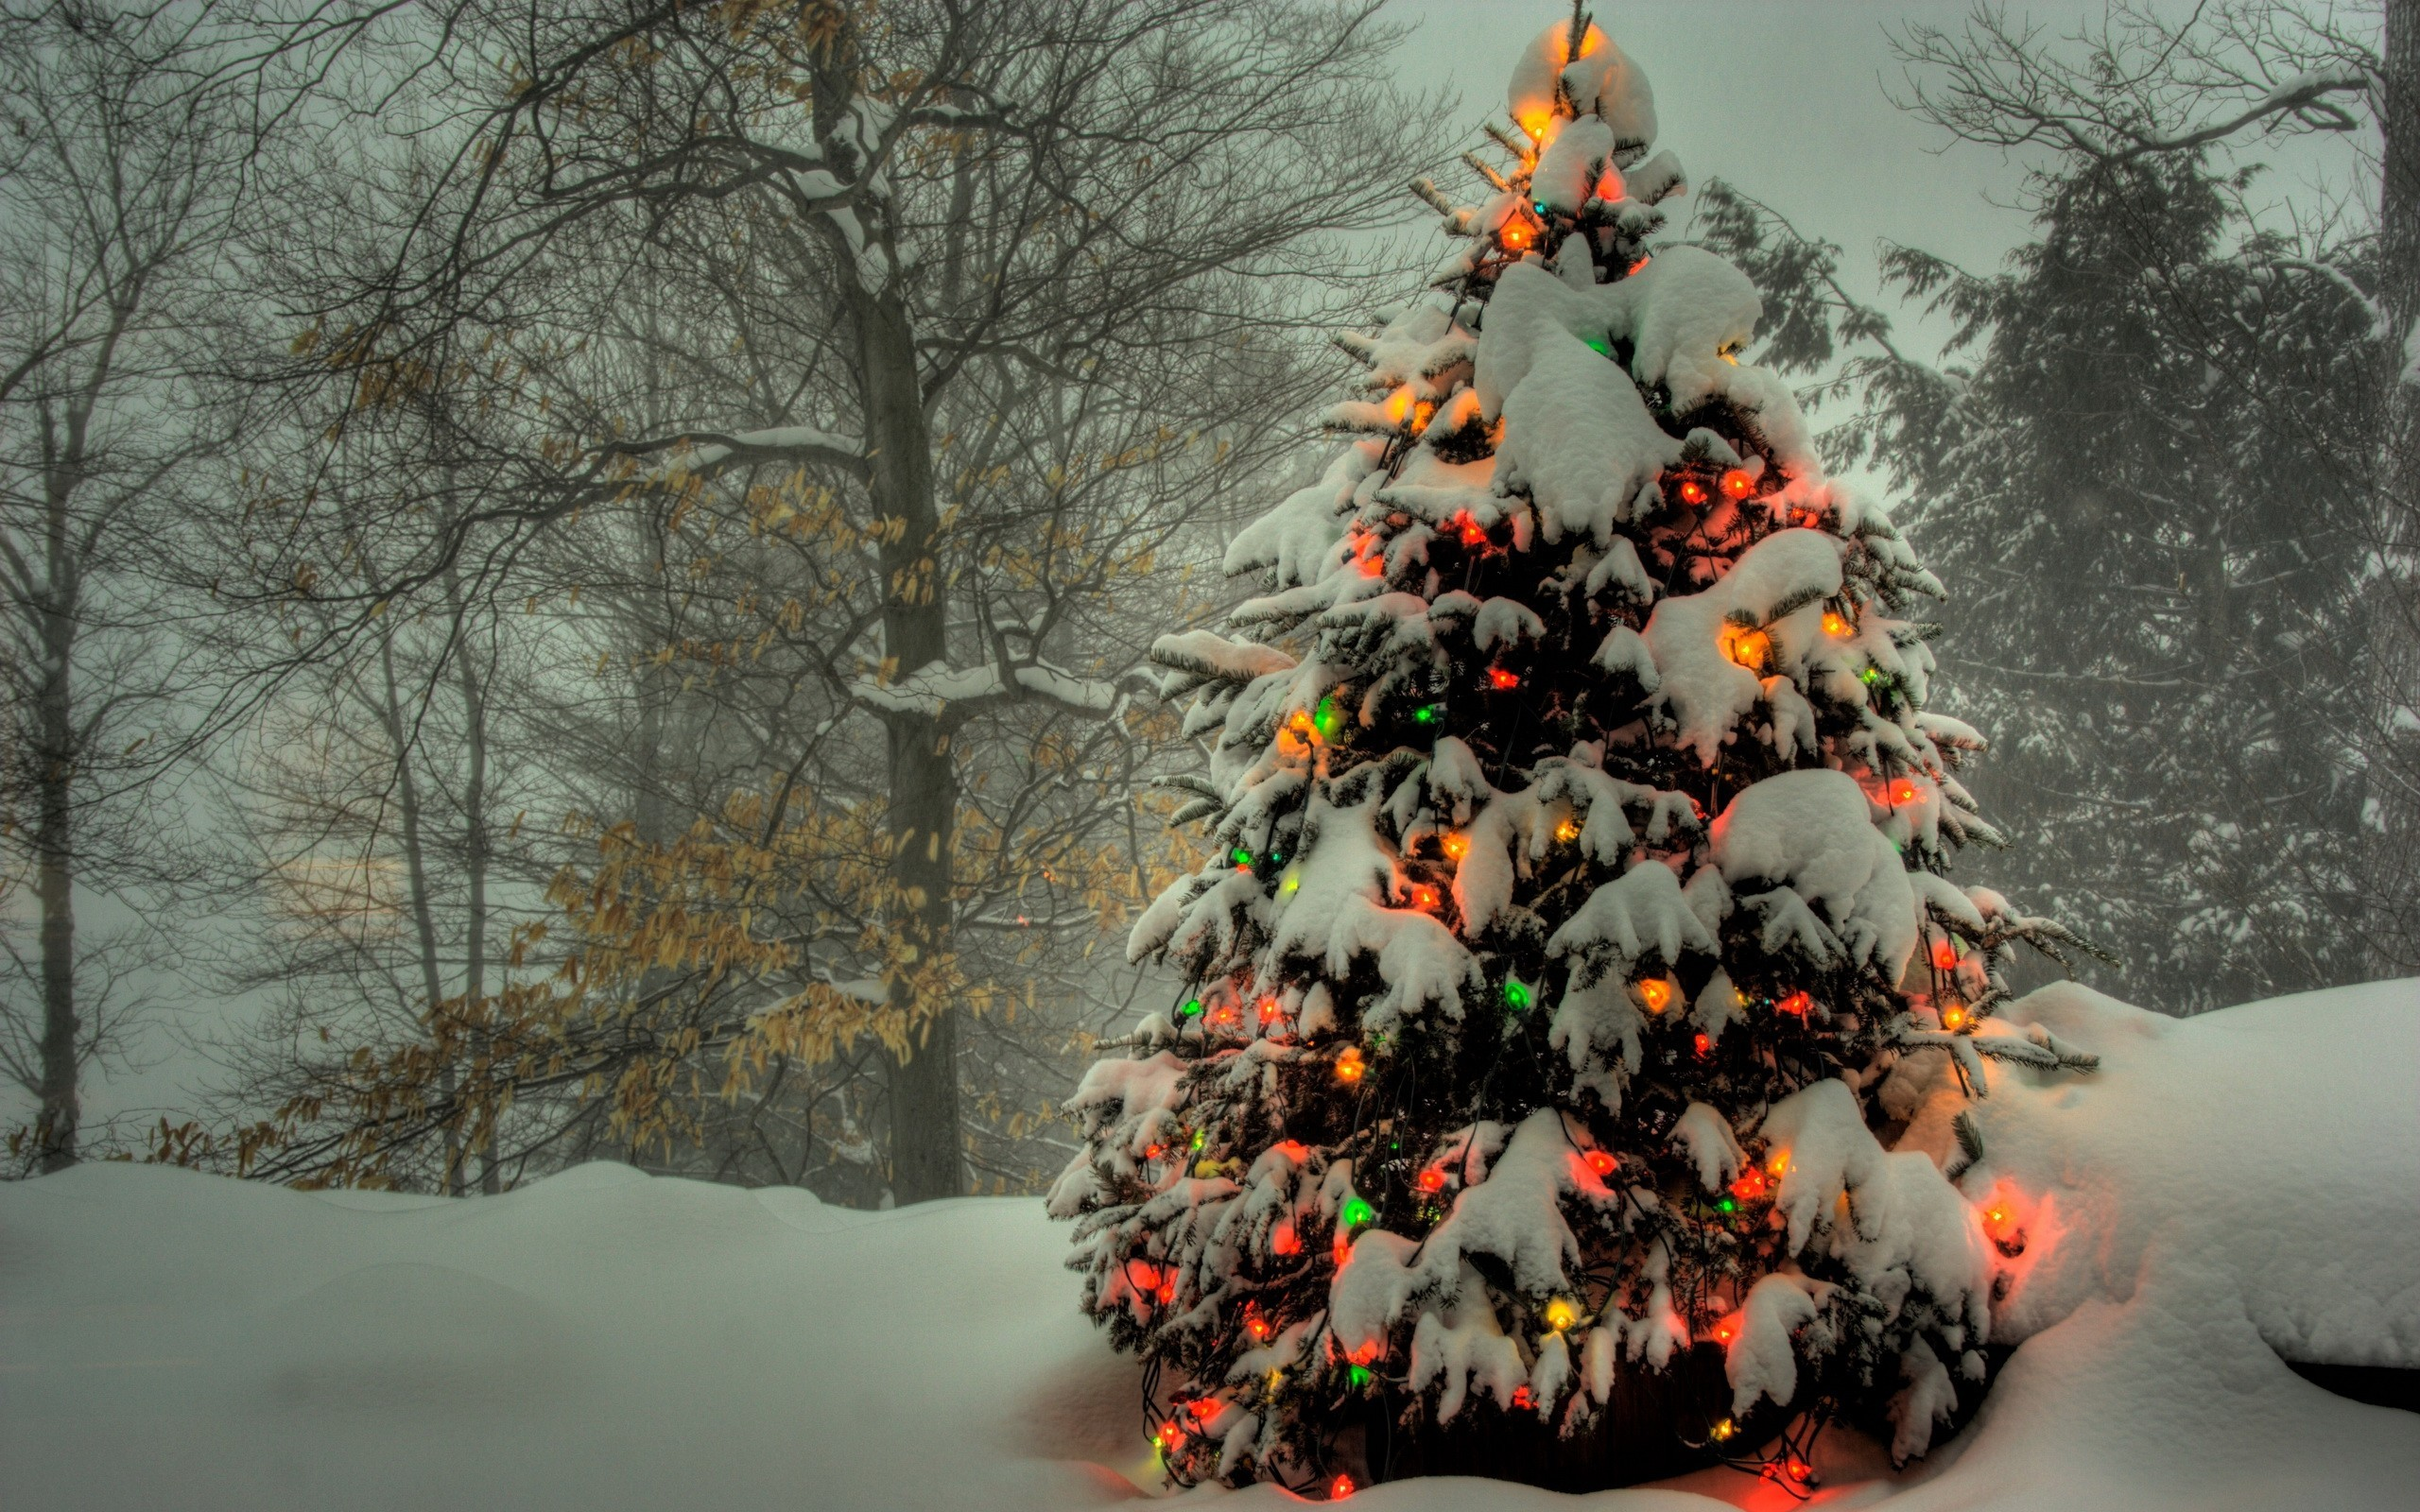 Live Winter Snow Fall Background Wallpaper Christmas Wallpaper Moving Snow Falling 72 Images